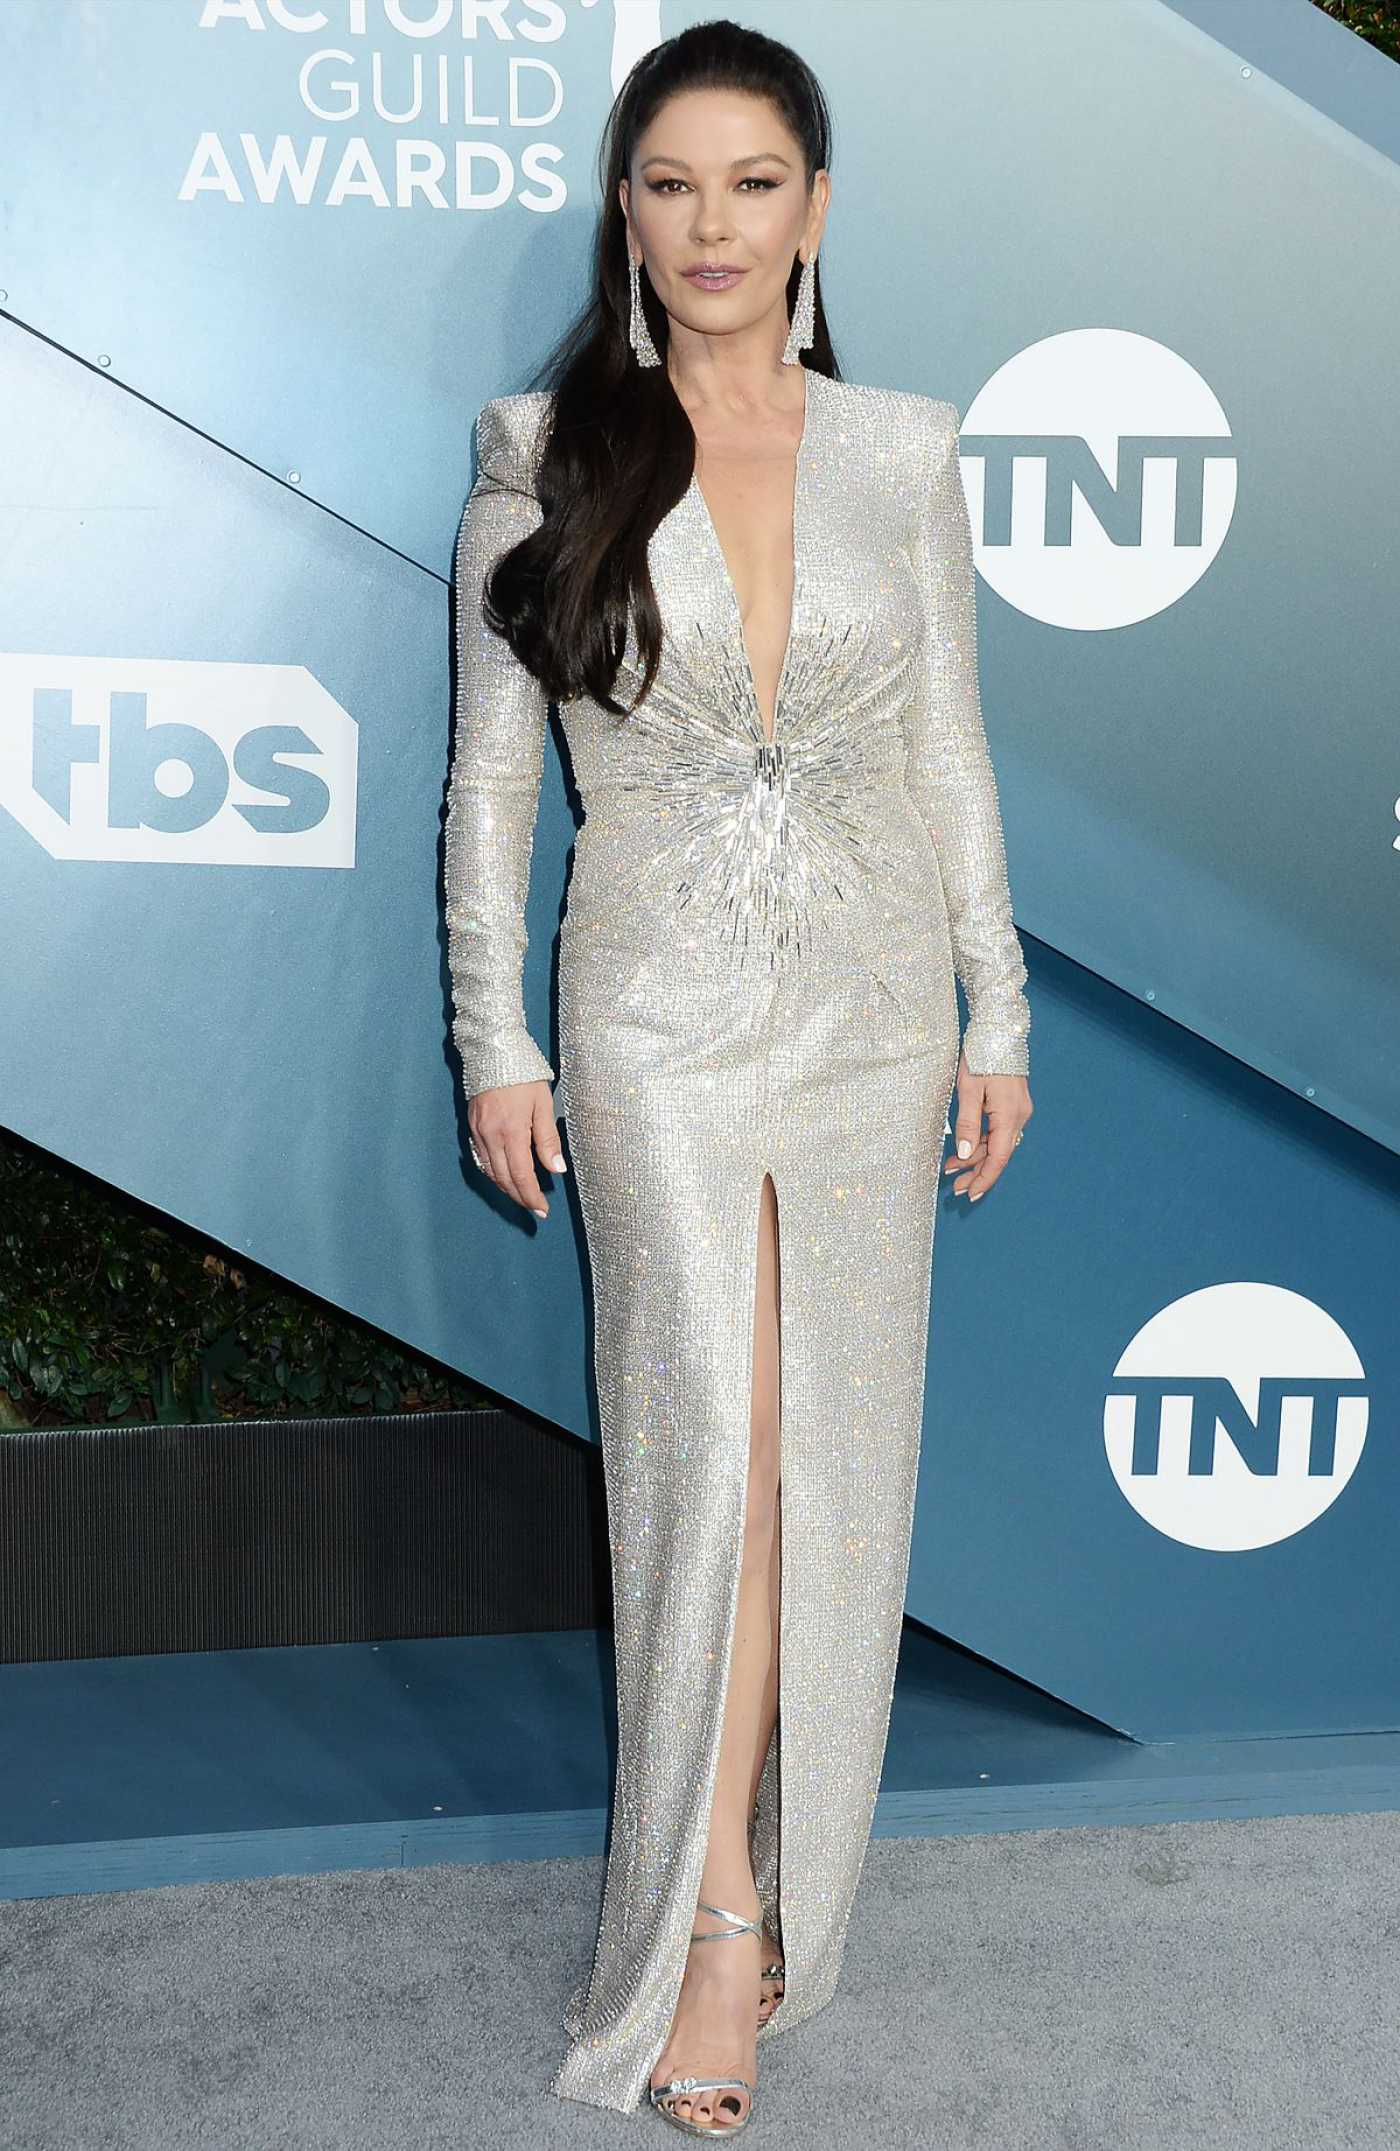 Catherine Zeta-Jones Attends the 26th Annual Screen Actors Guild Awards in Los Angeles 01/19/2020